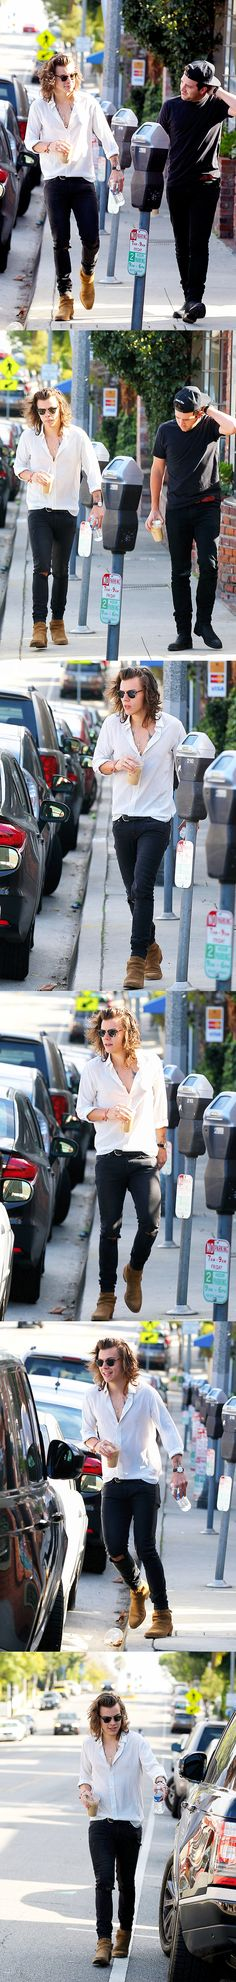 Harry Styles>>> I don't know if its just me but his style in clothing is hot!!!